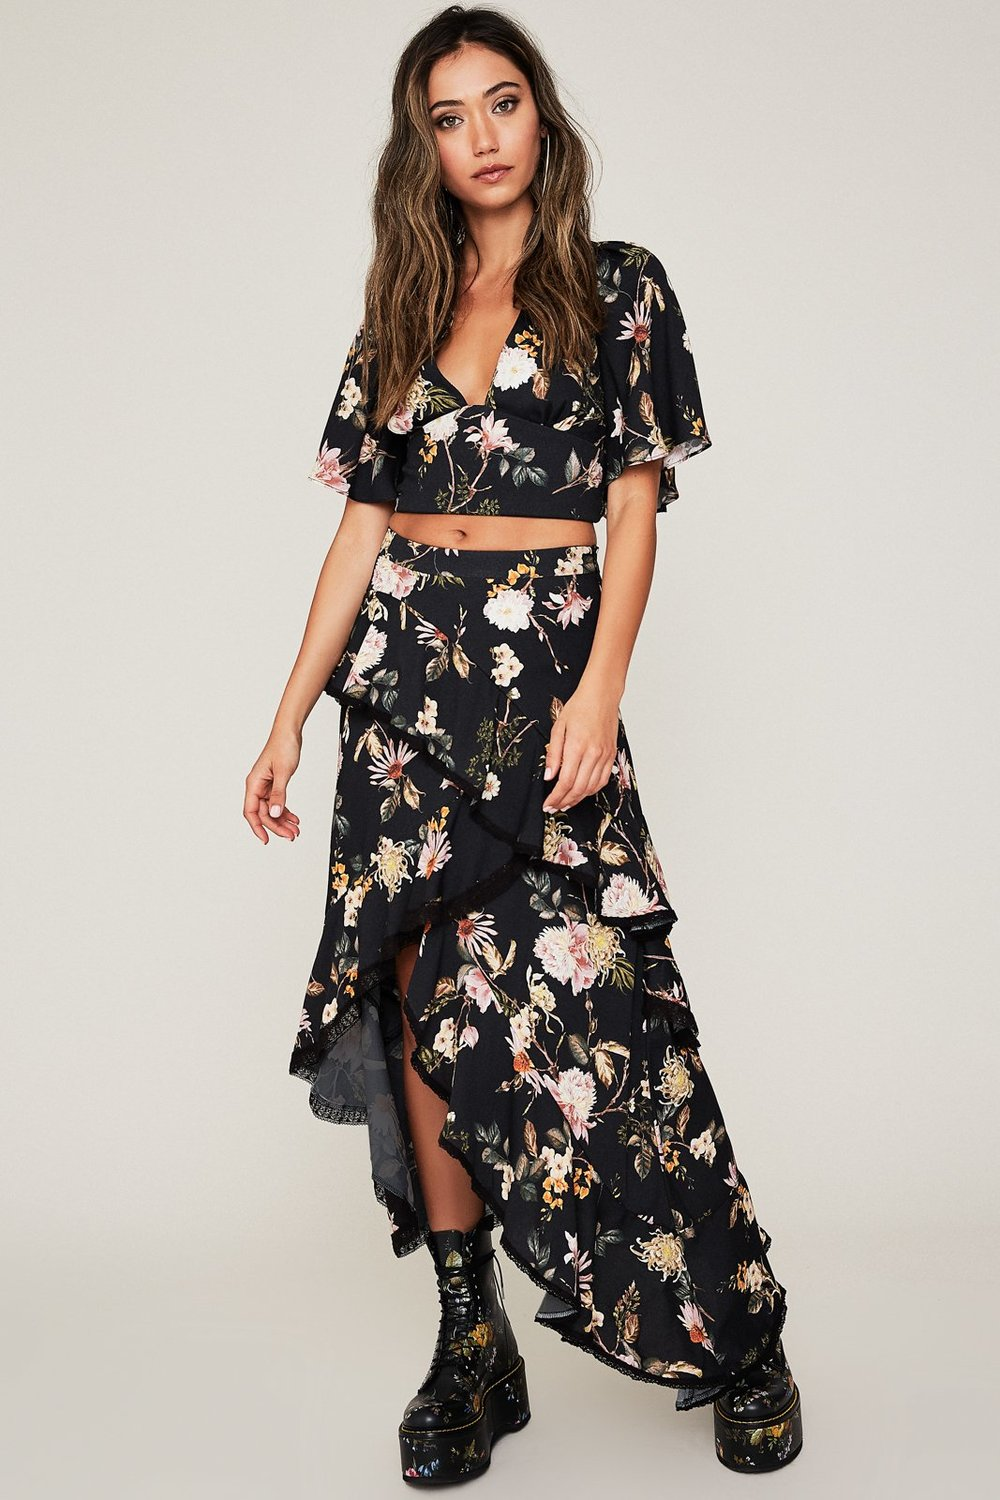 https://shopafrm.com/collections/bottoms/products/grace-ruffle-maxi-skirt-1?variant=42908493573